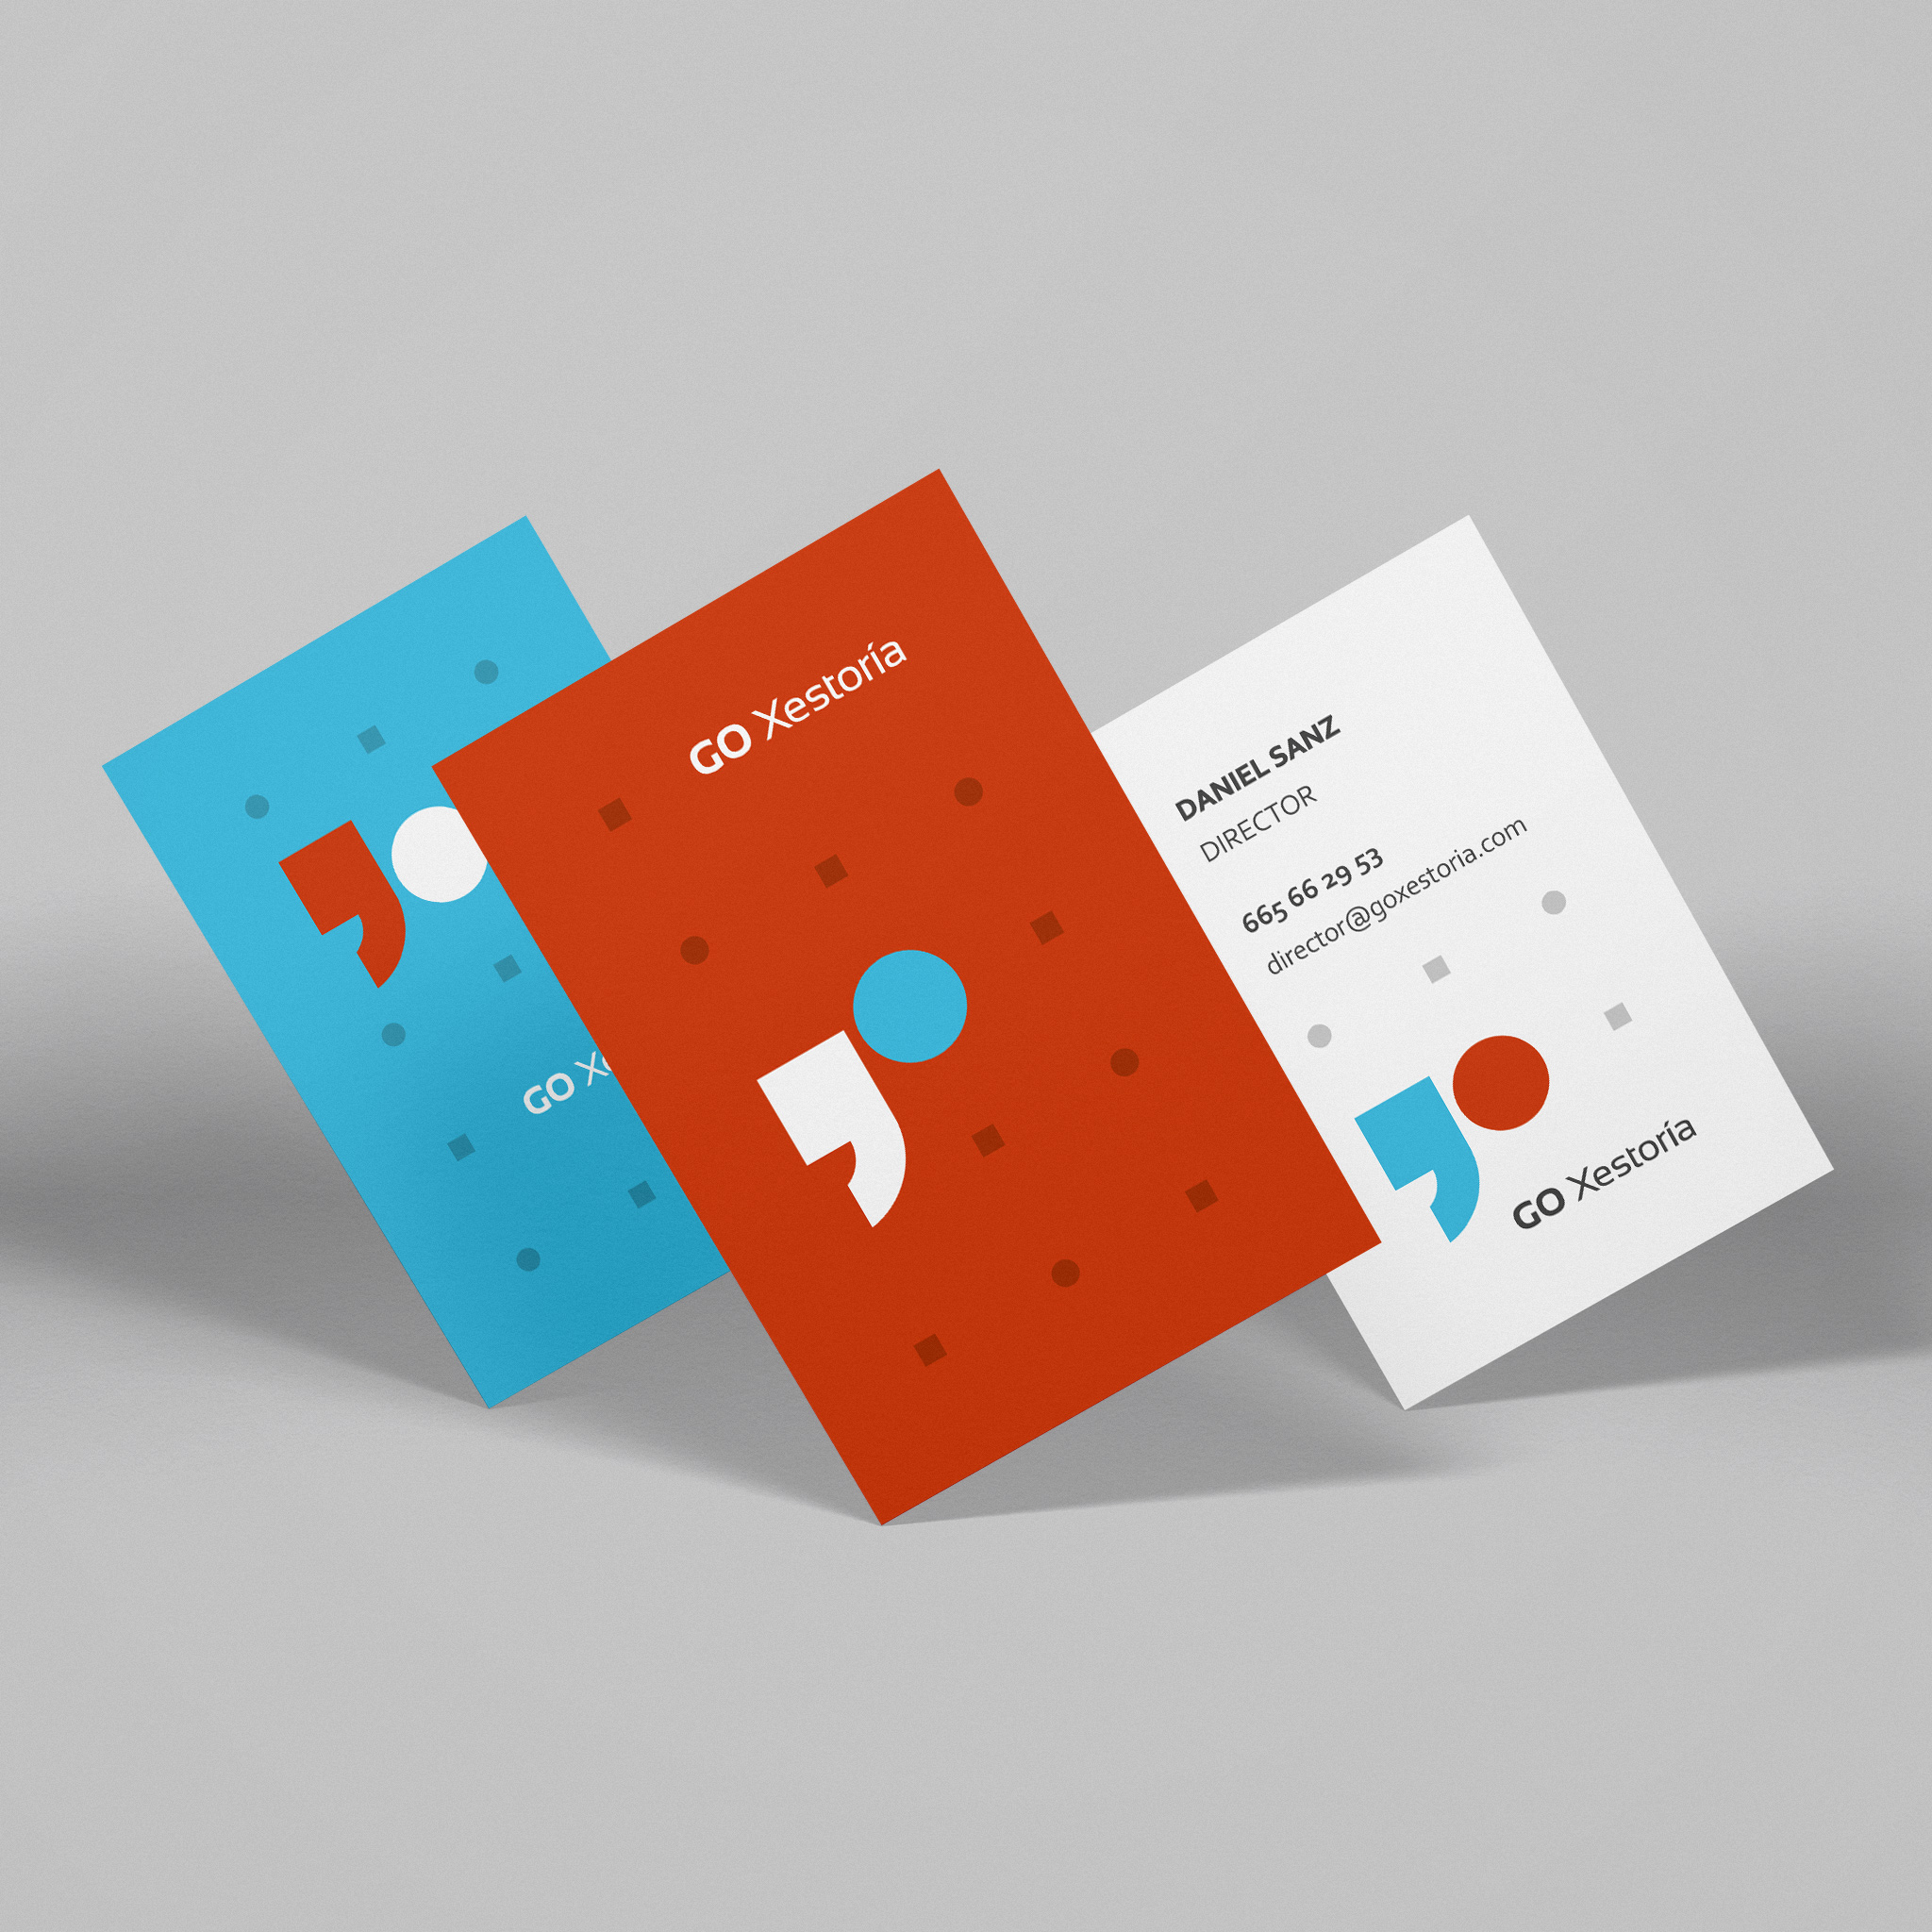 Go Xestoria businesscards